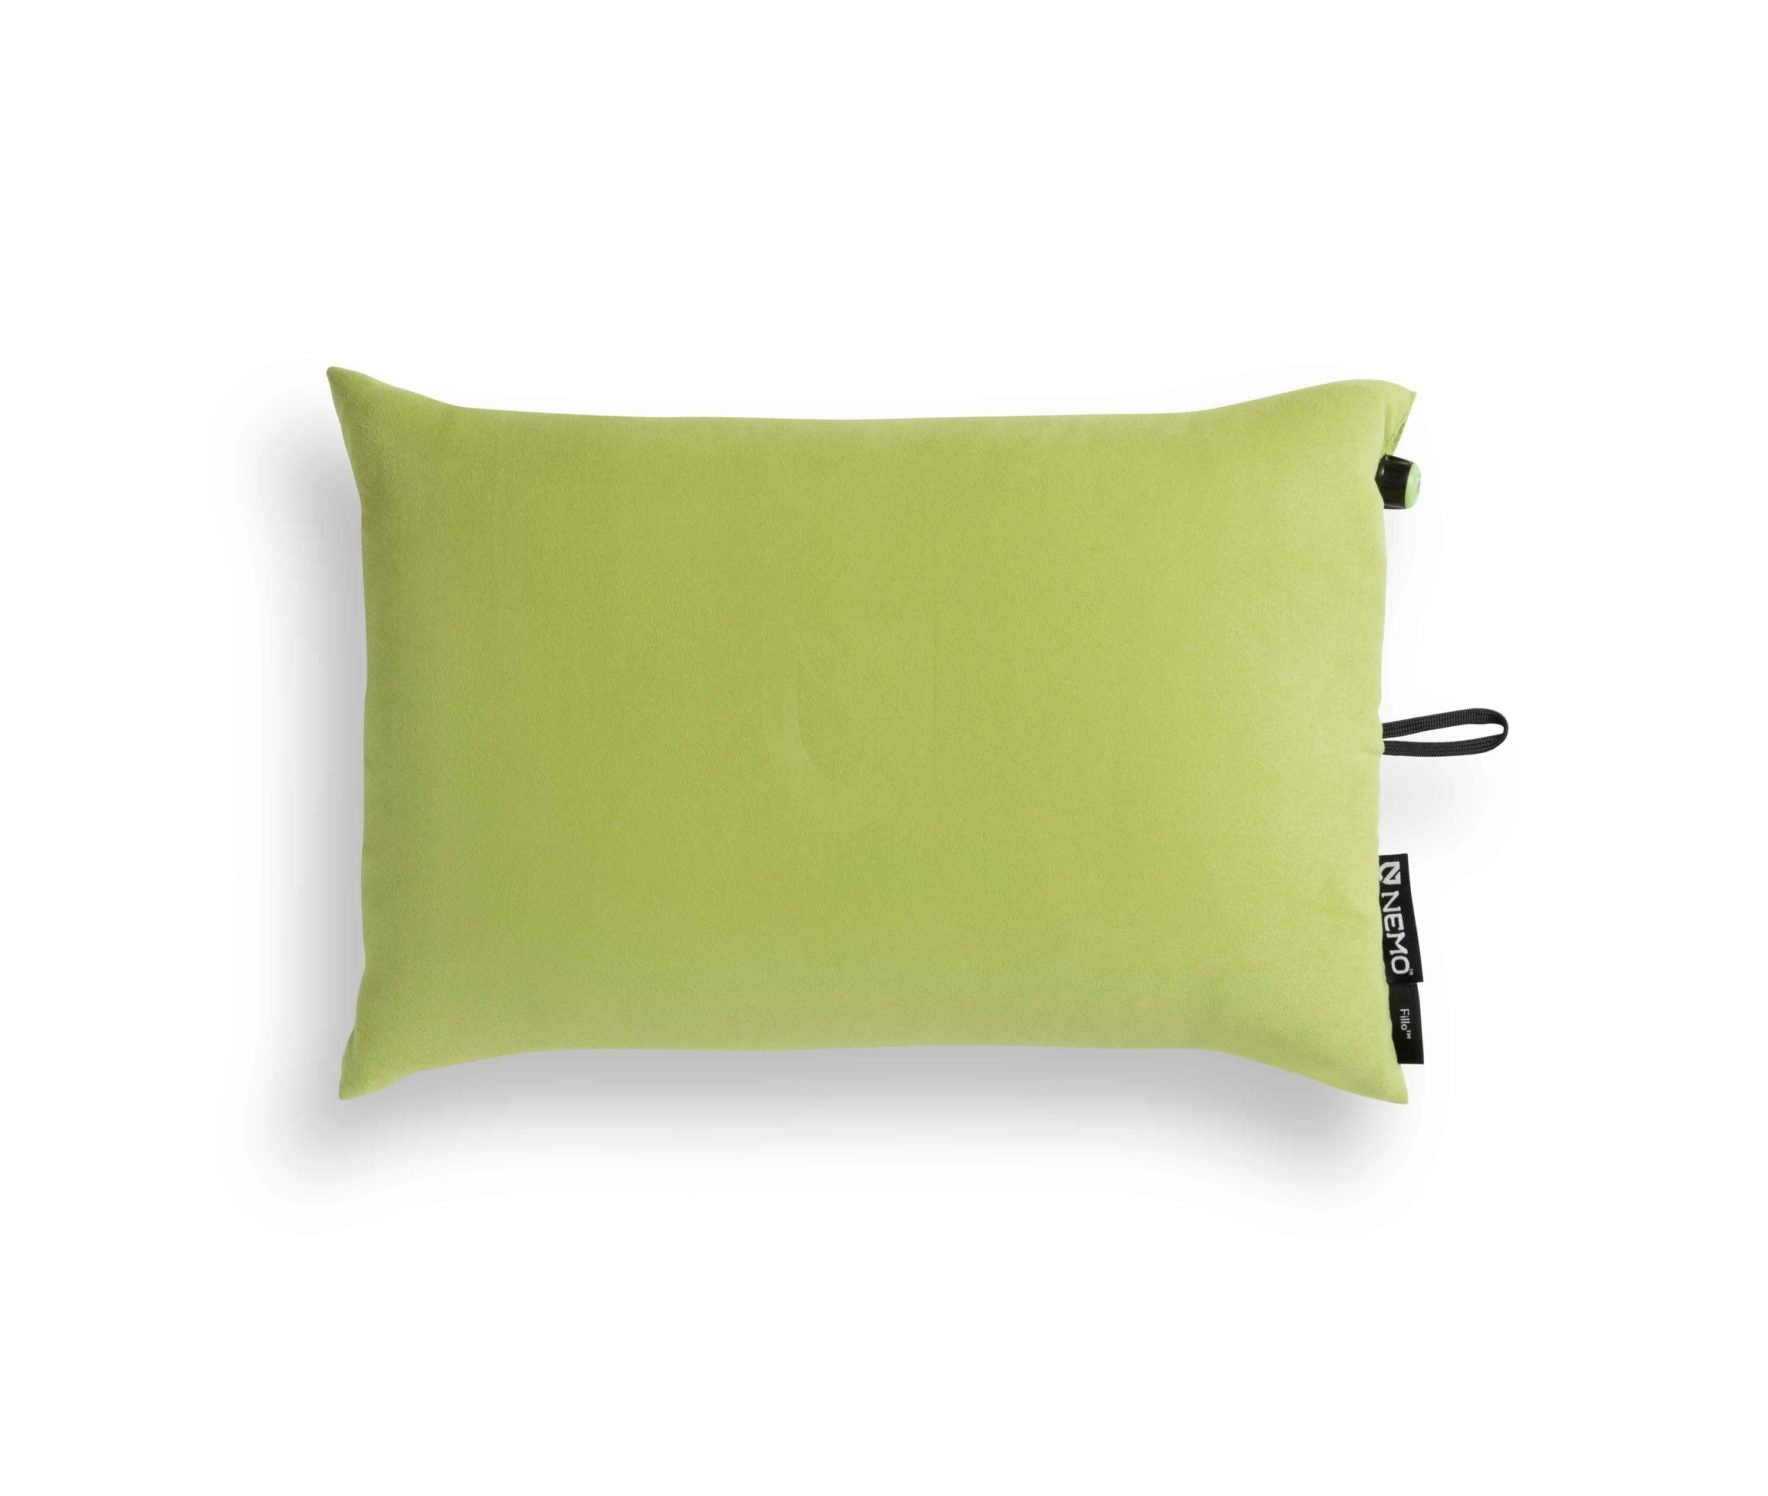 Nemo Fillo Backpacking and Camping Pillow - Canopy Green